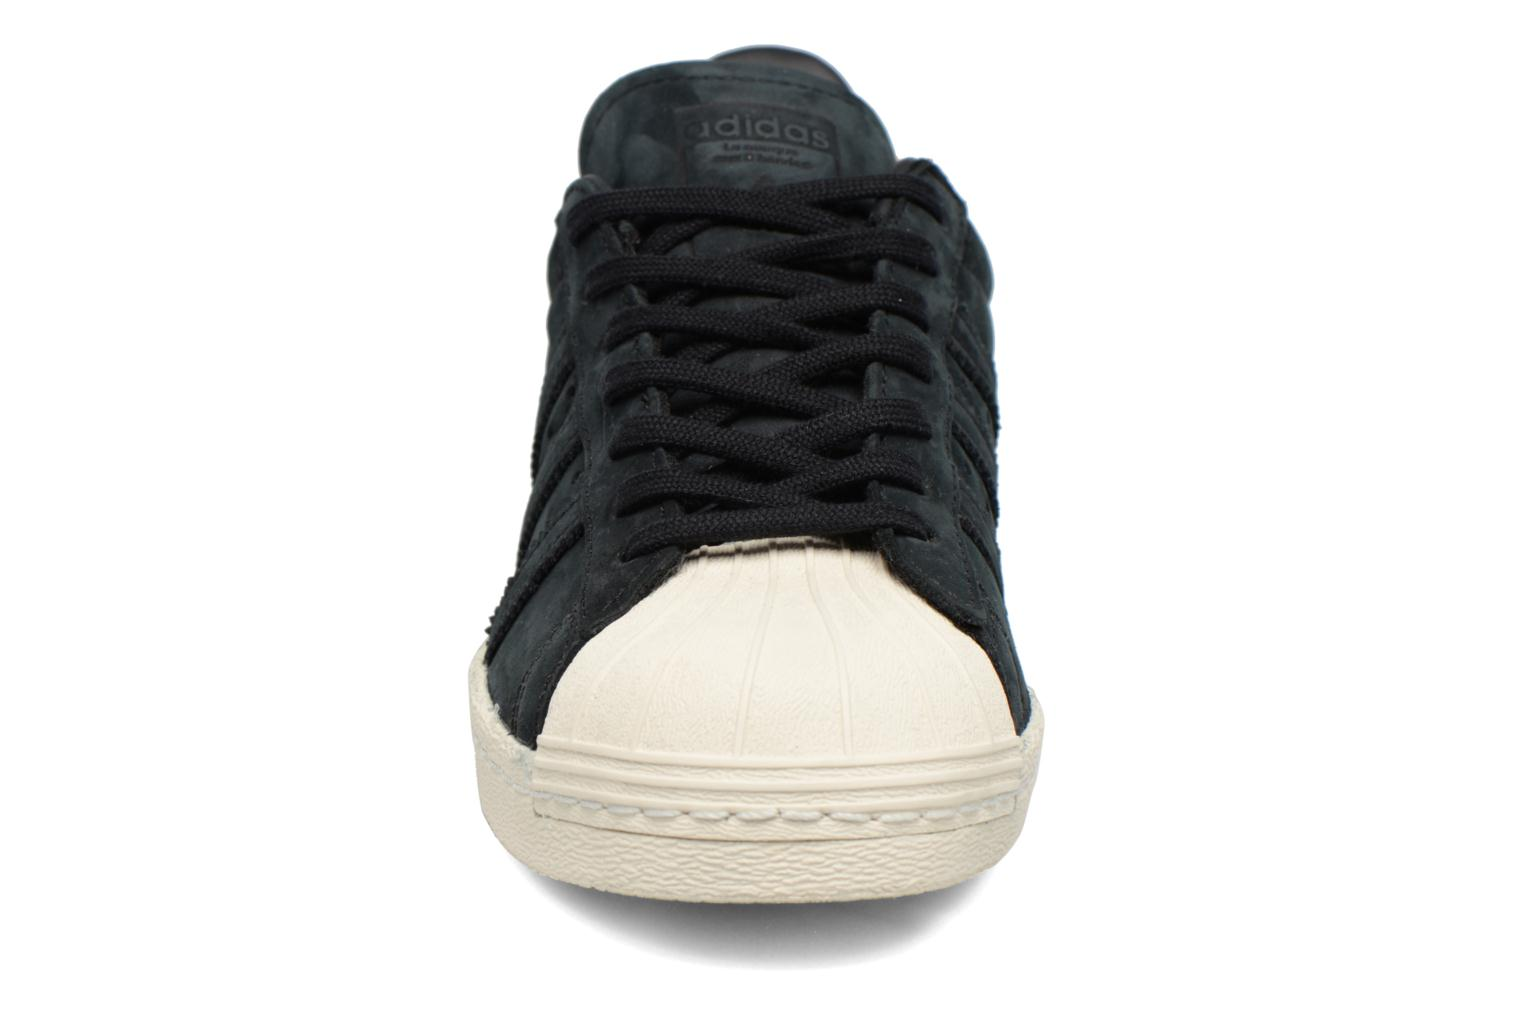 Superstar 80S W Noiess/Noiess/Blacas2